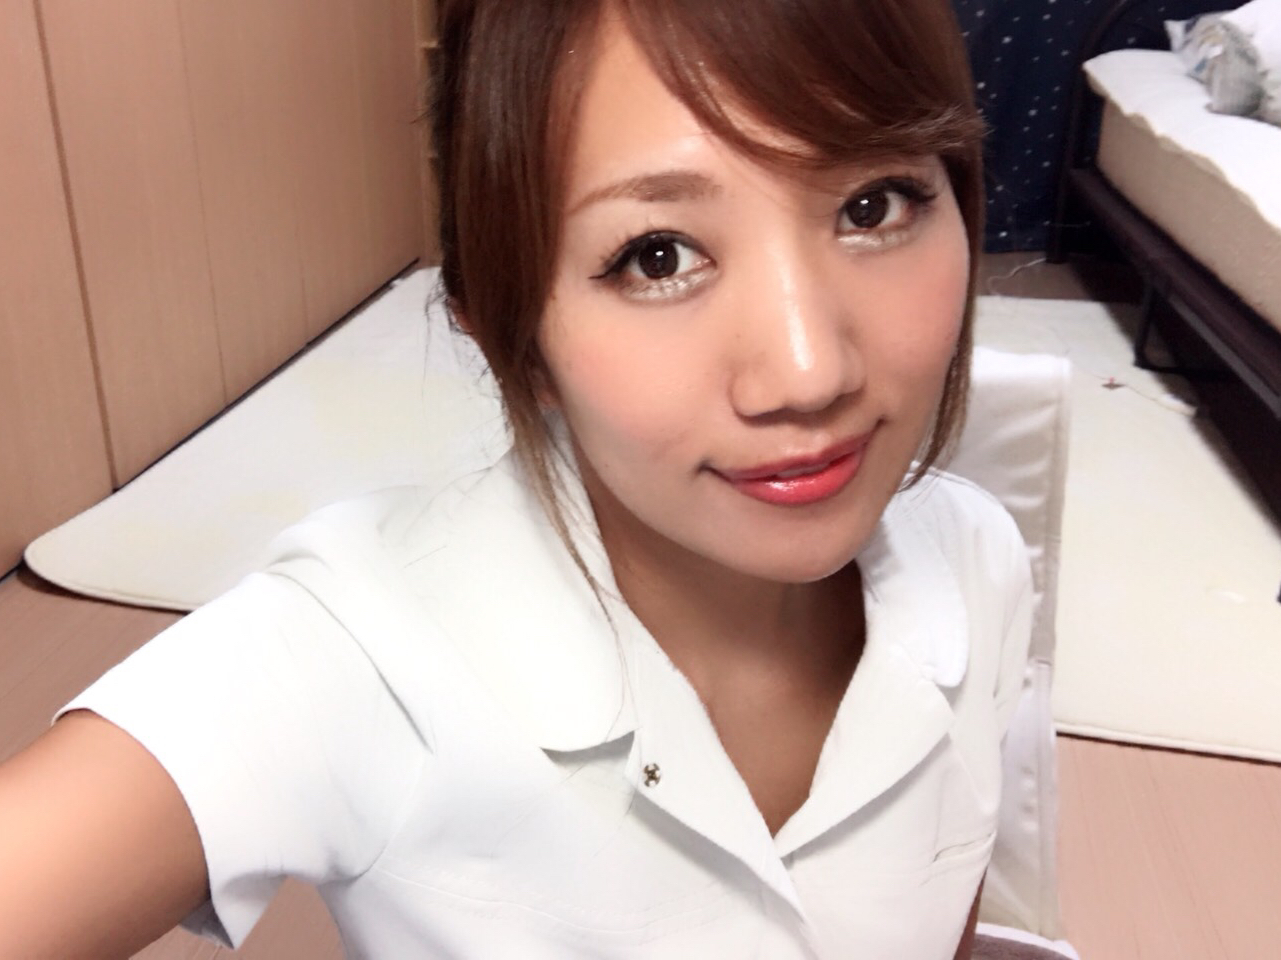 uHIROu - Japanese webcam girl